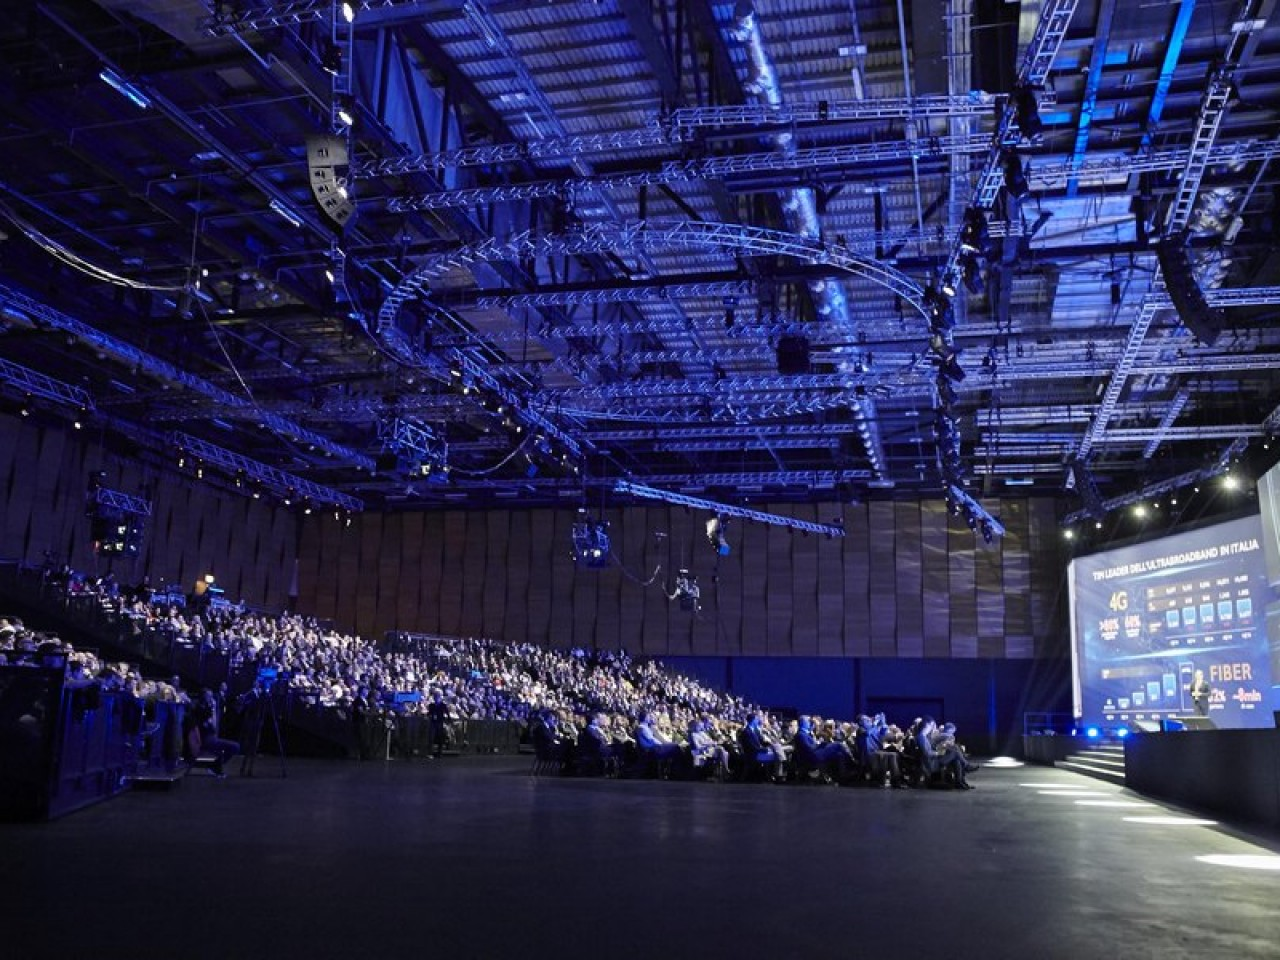 A last-minute Sales Convention for 2000 people